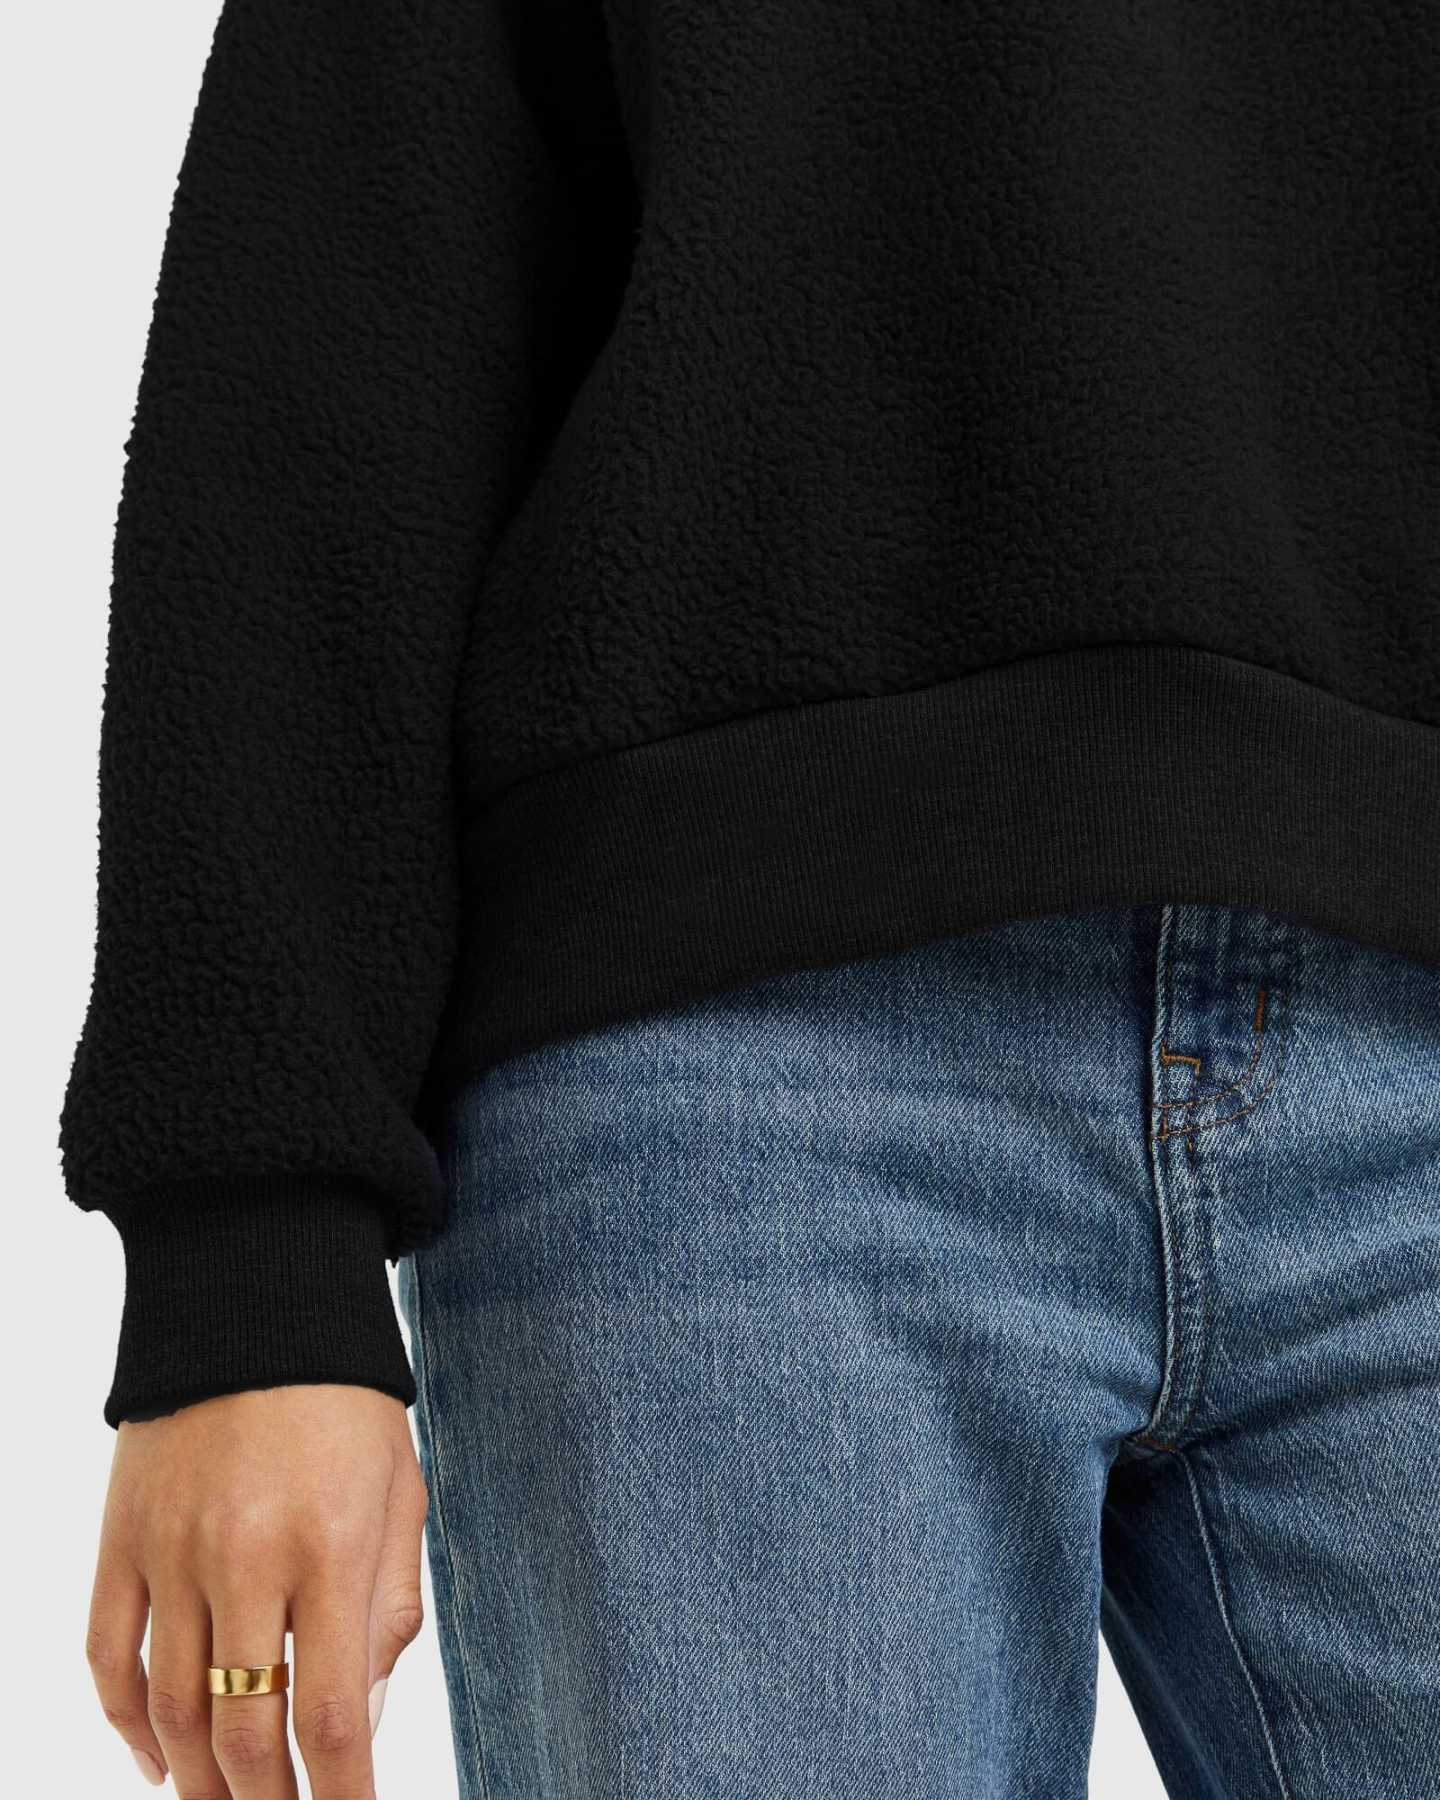 woman wearing sherpa crewneck sweatshirt in black zoomed in